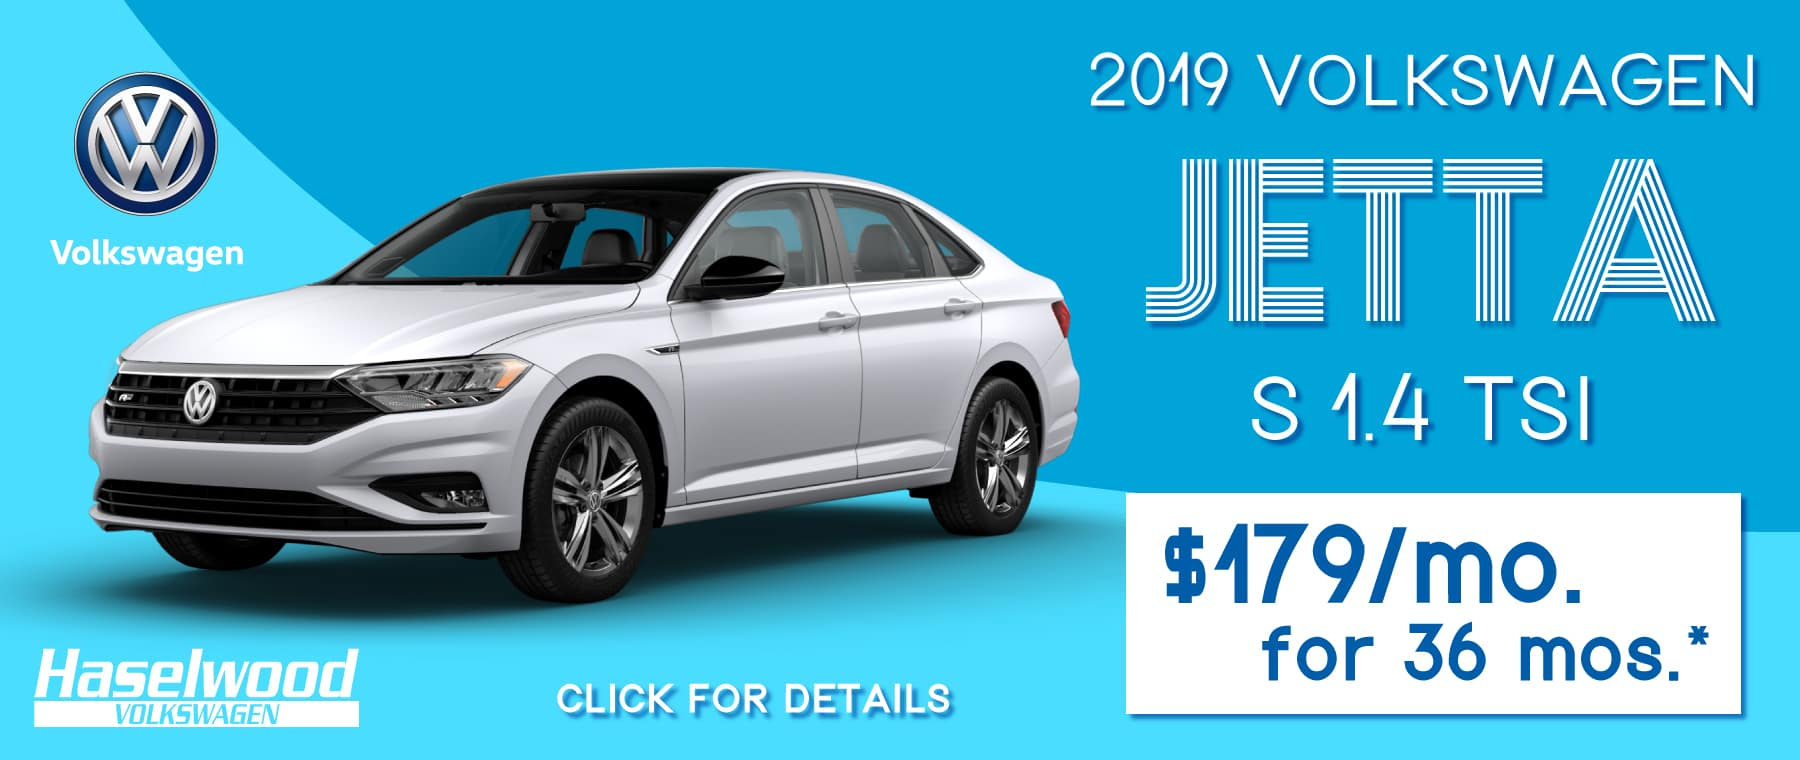 2019 Volkswagen Jetta S FWD  $179/mo. For 36 mos.*